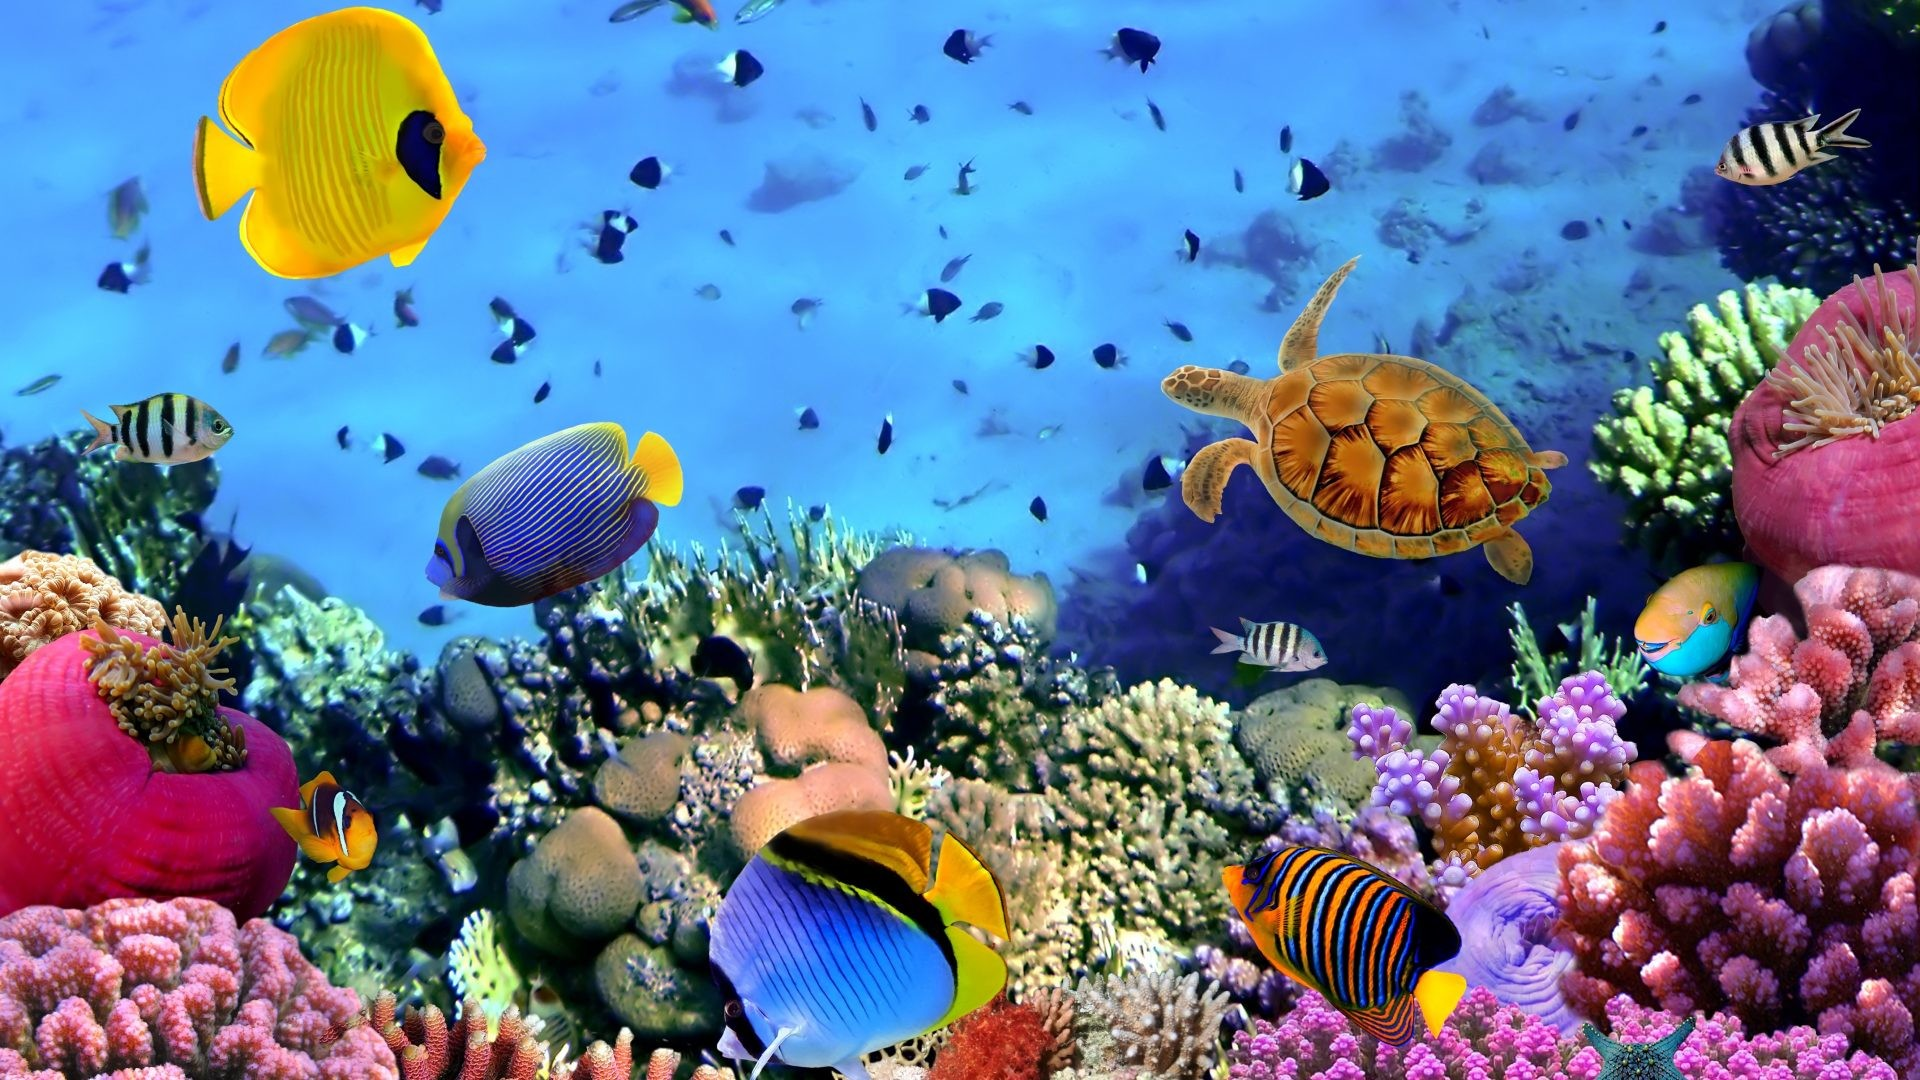 Coral Reef Wallpaper (61+ Images